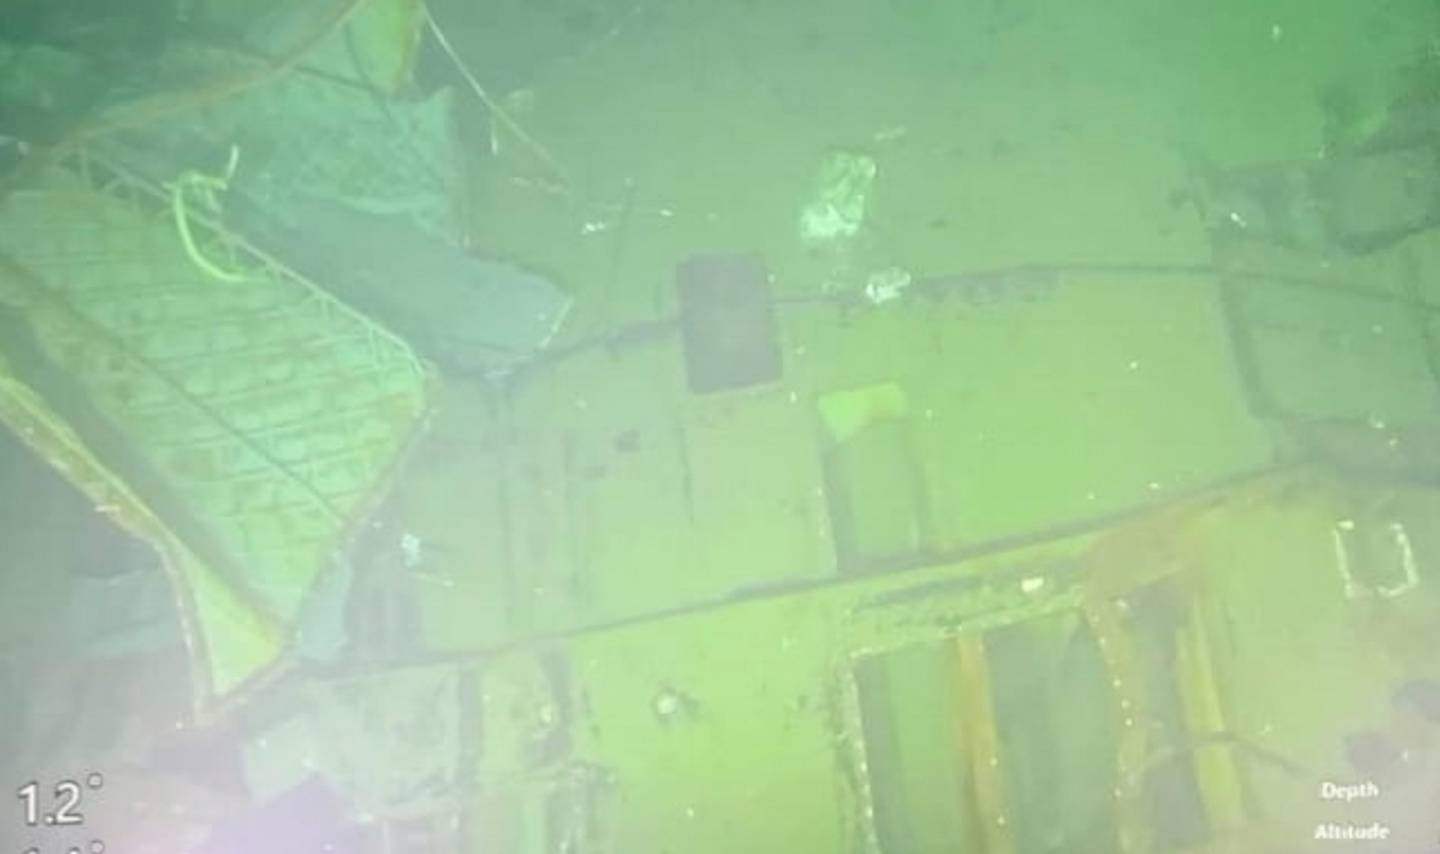 This undated underwater photo released on April 25 by Indonesian Navy shows parts of submarine KRI Nanggala that sank in Bali Sea, Indonesia. Photo / via AP